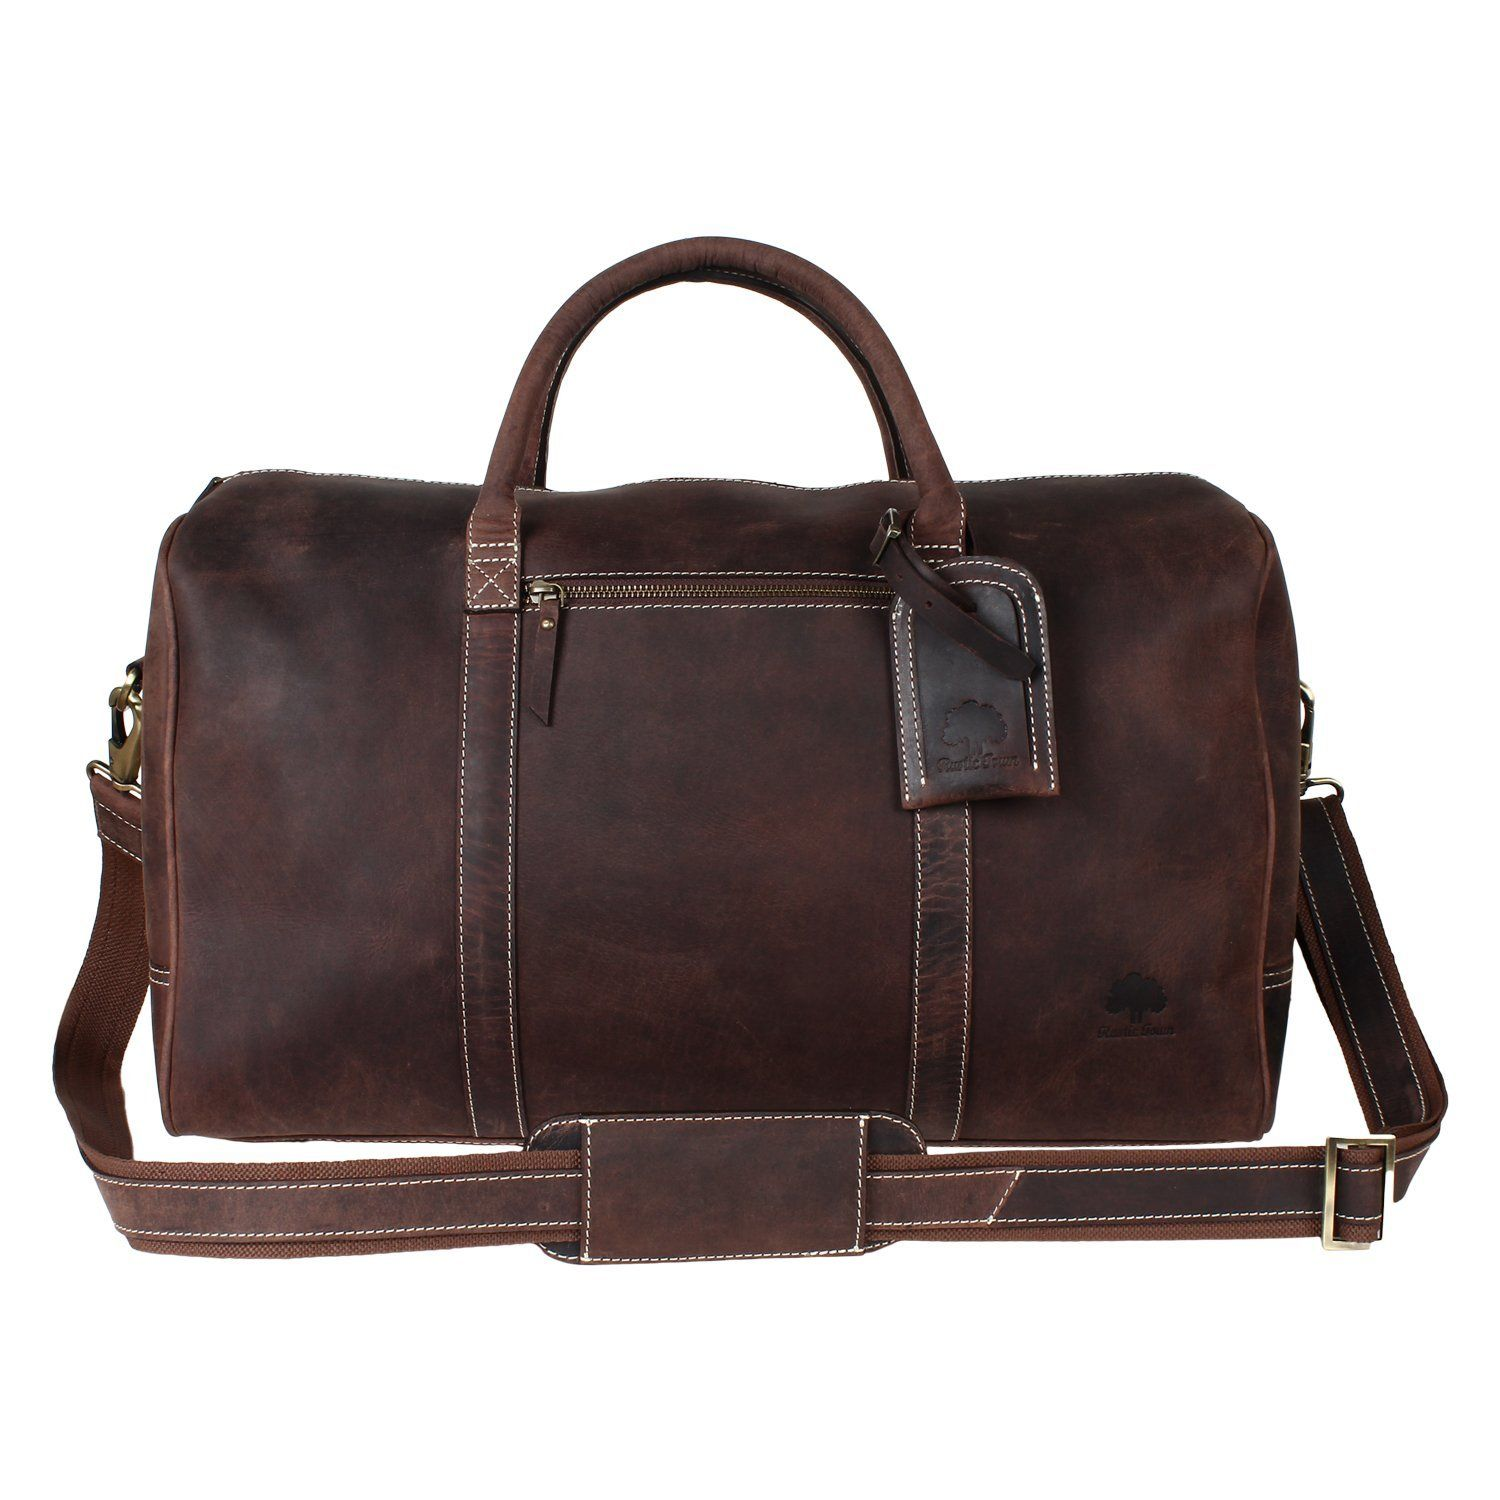 04a925a3b2d1 Rustic Town Crazy Horse Leather Duffel Bag Gift for men Leather Travel Bag  (Dark Brown)  Amazon.co.uk  Luggage